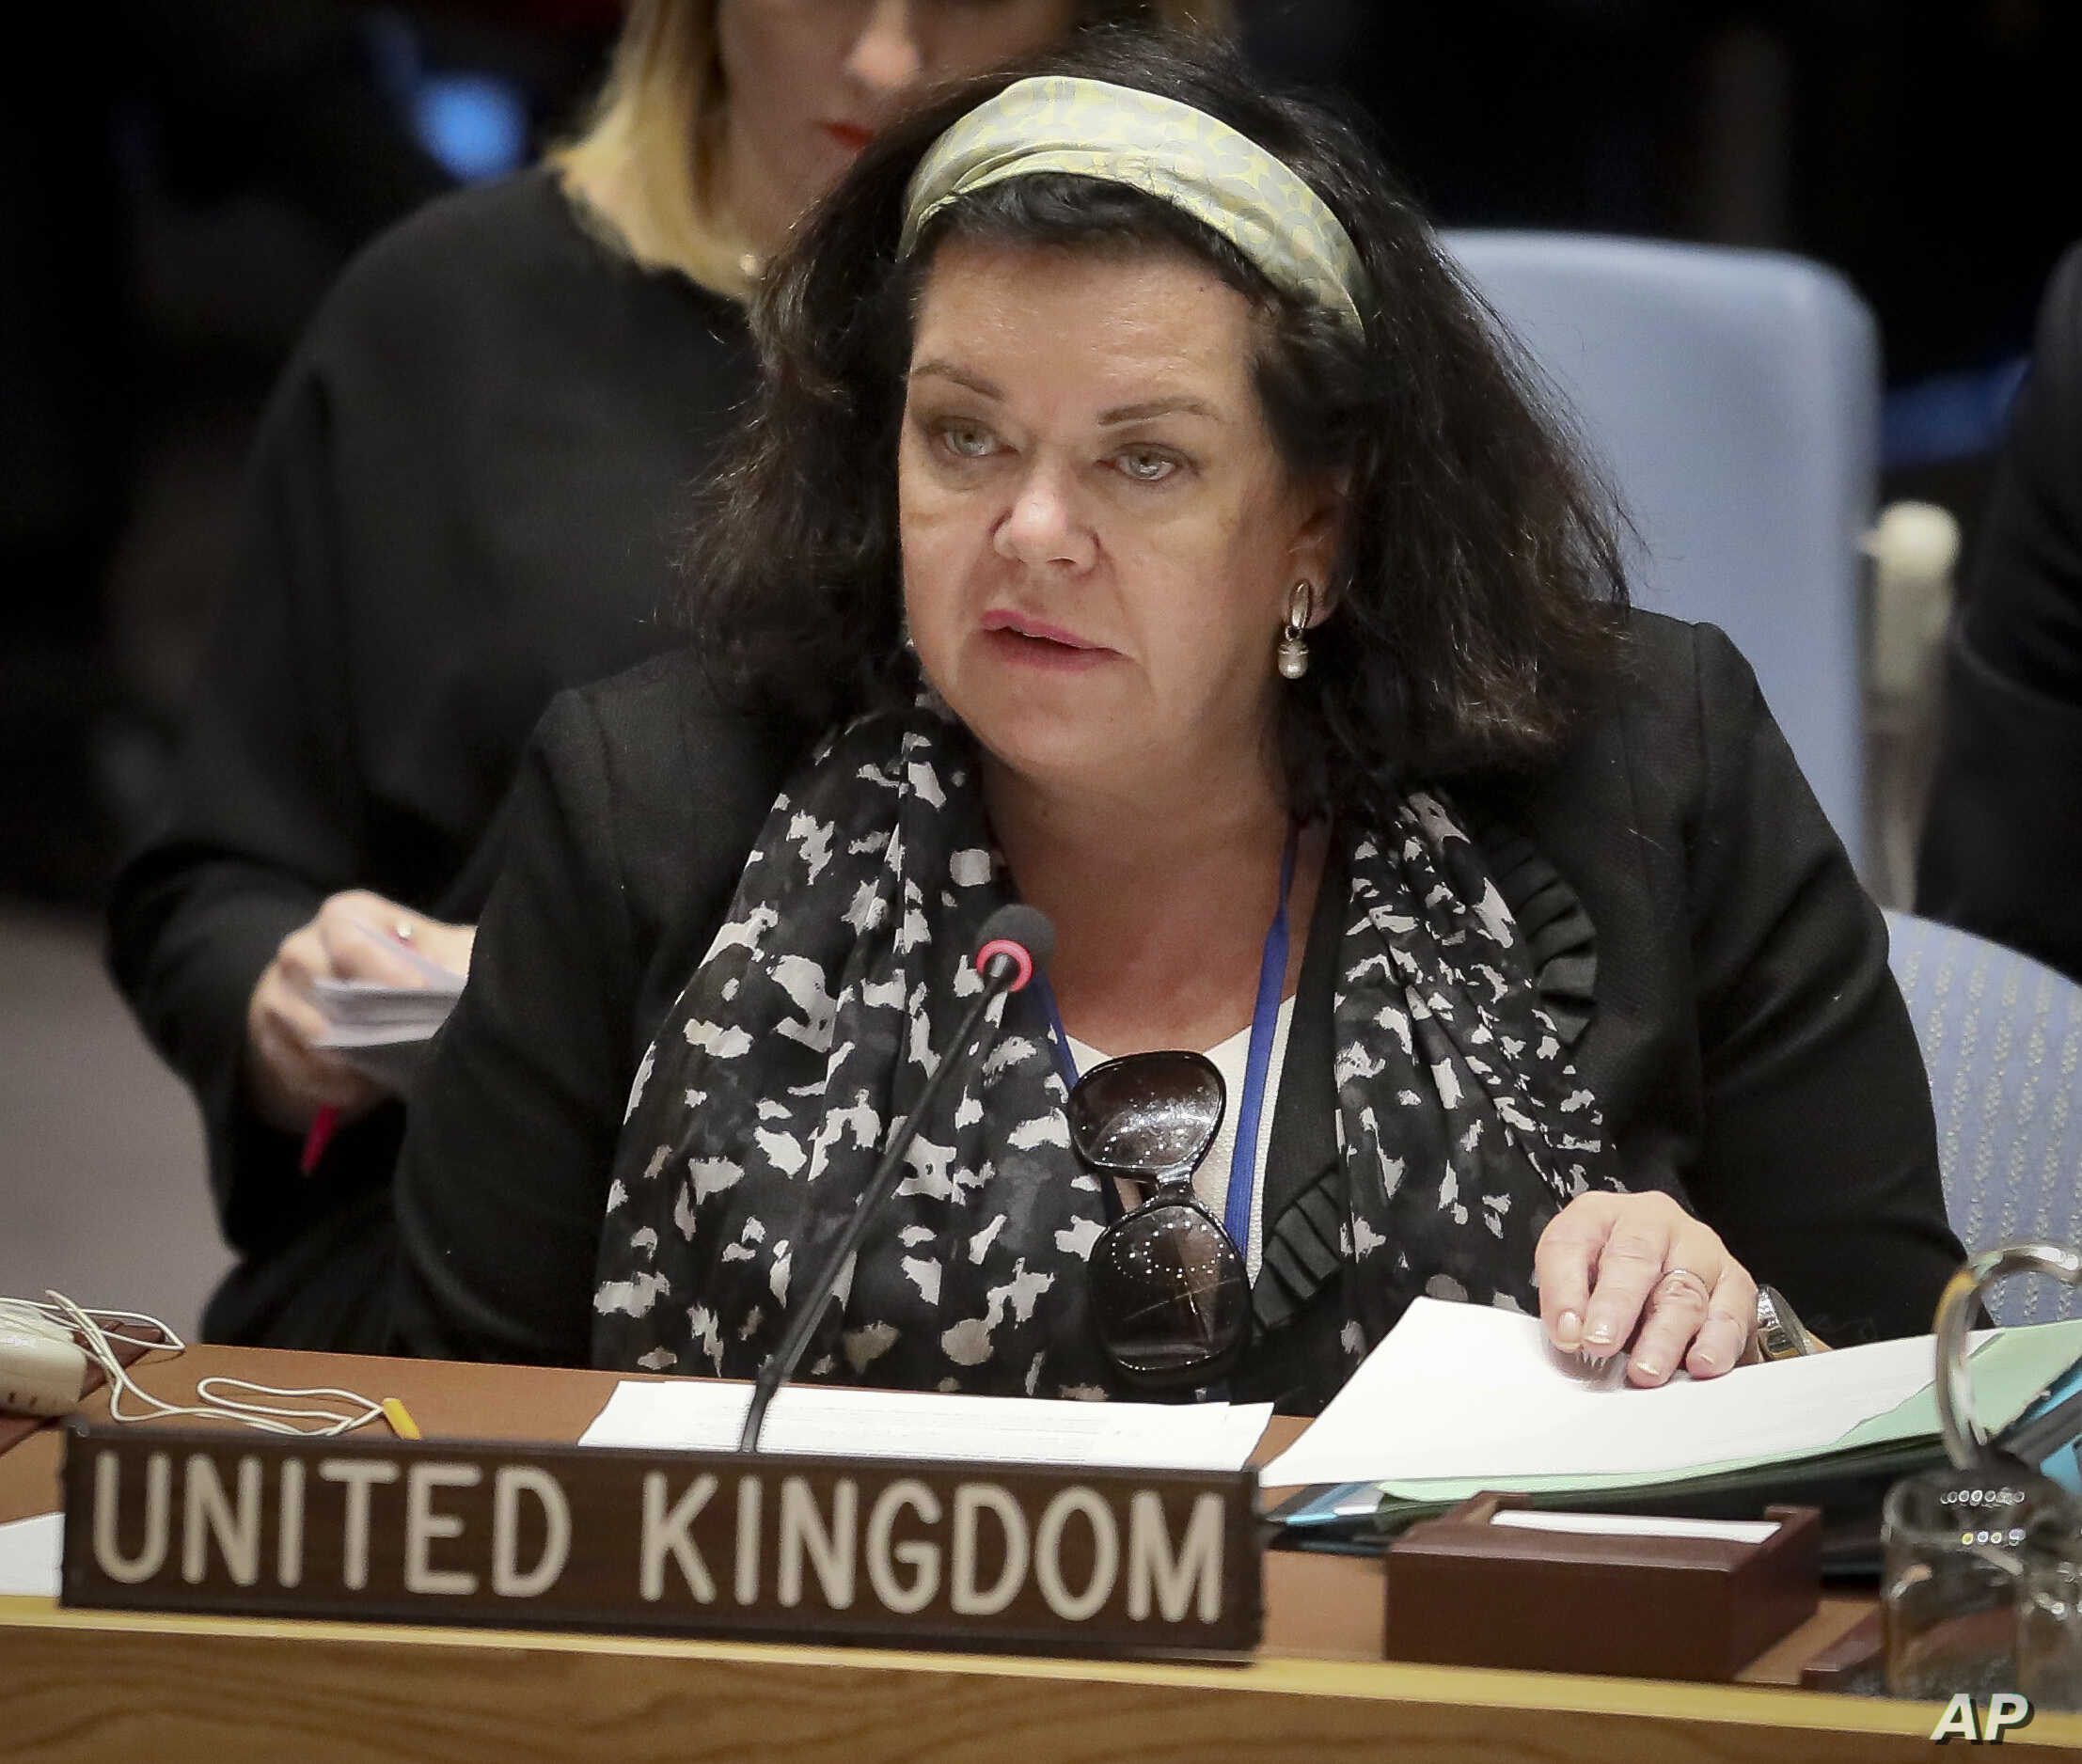 United Kingdom Ambassador Karen Pierce address a meeting of the United Nations Security Council on Yemen,  Oct. 23, 2018 at UN headquarters.